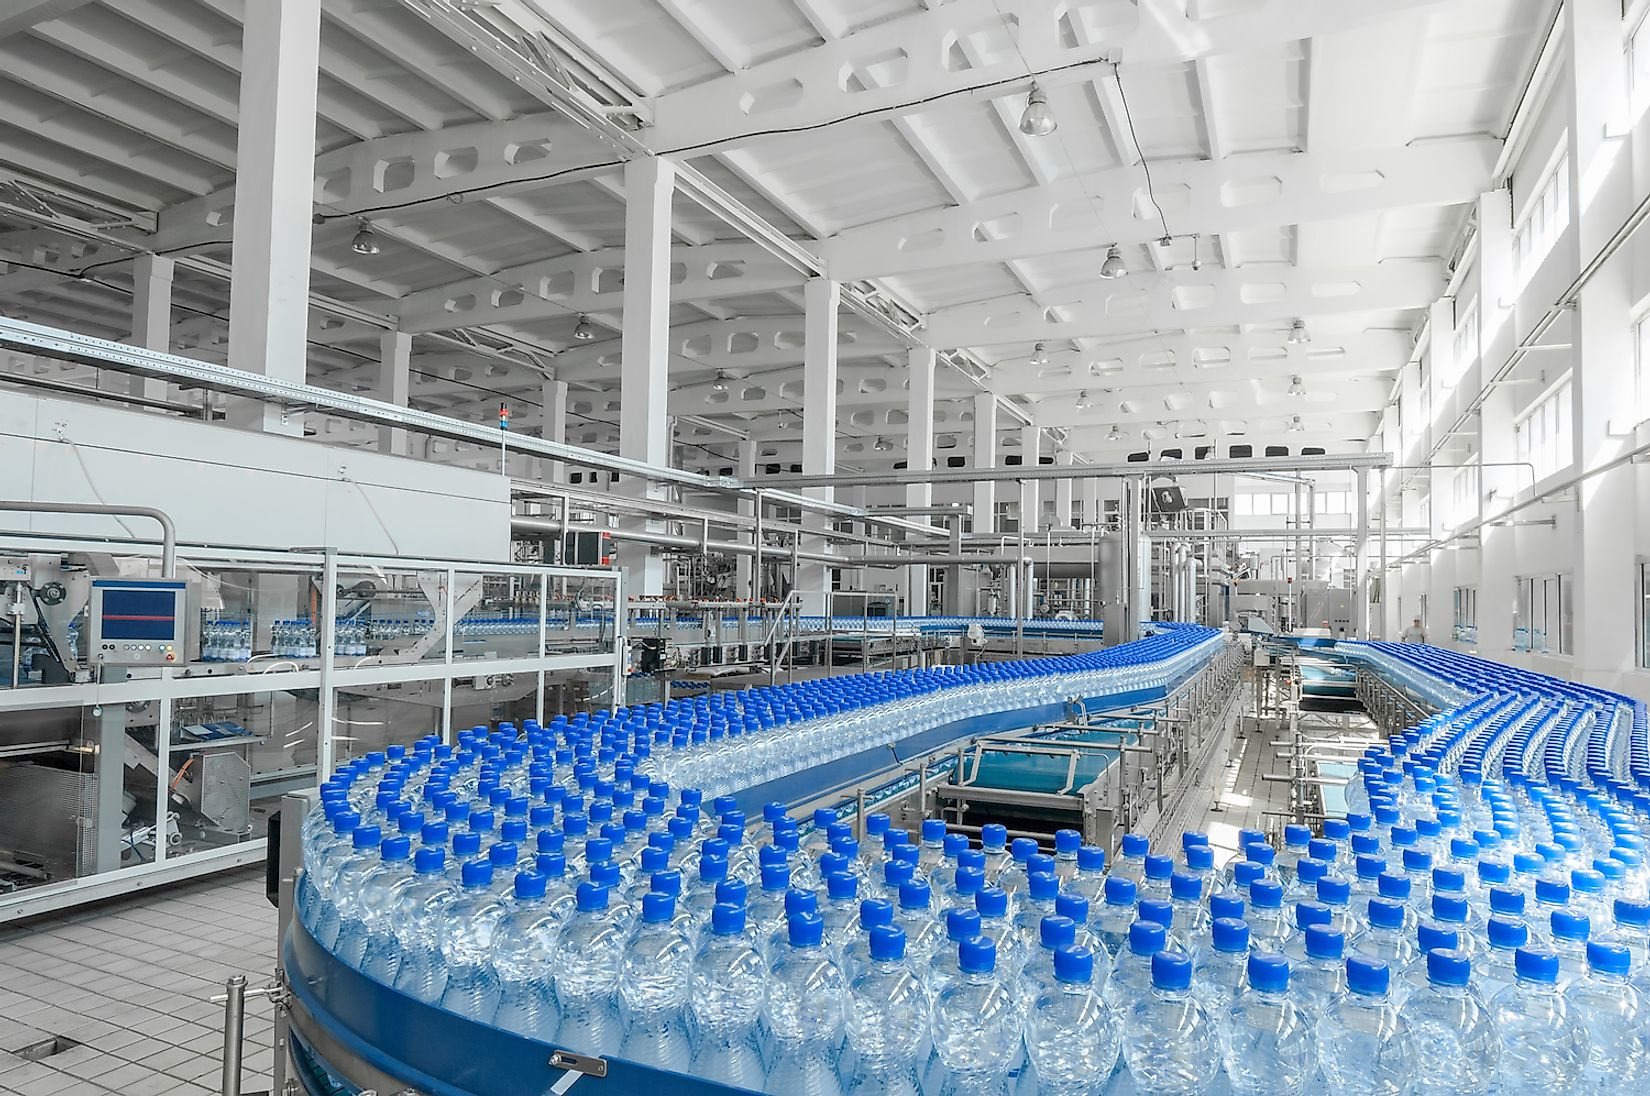 Plastic bottle manufacturing in a factory. Image credit: Alba_alioth/Shutterstock.com